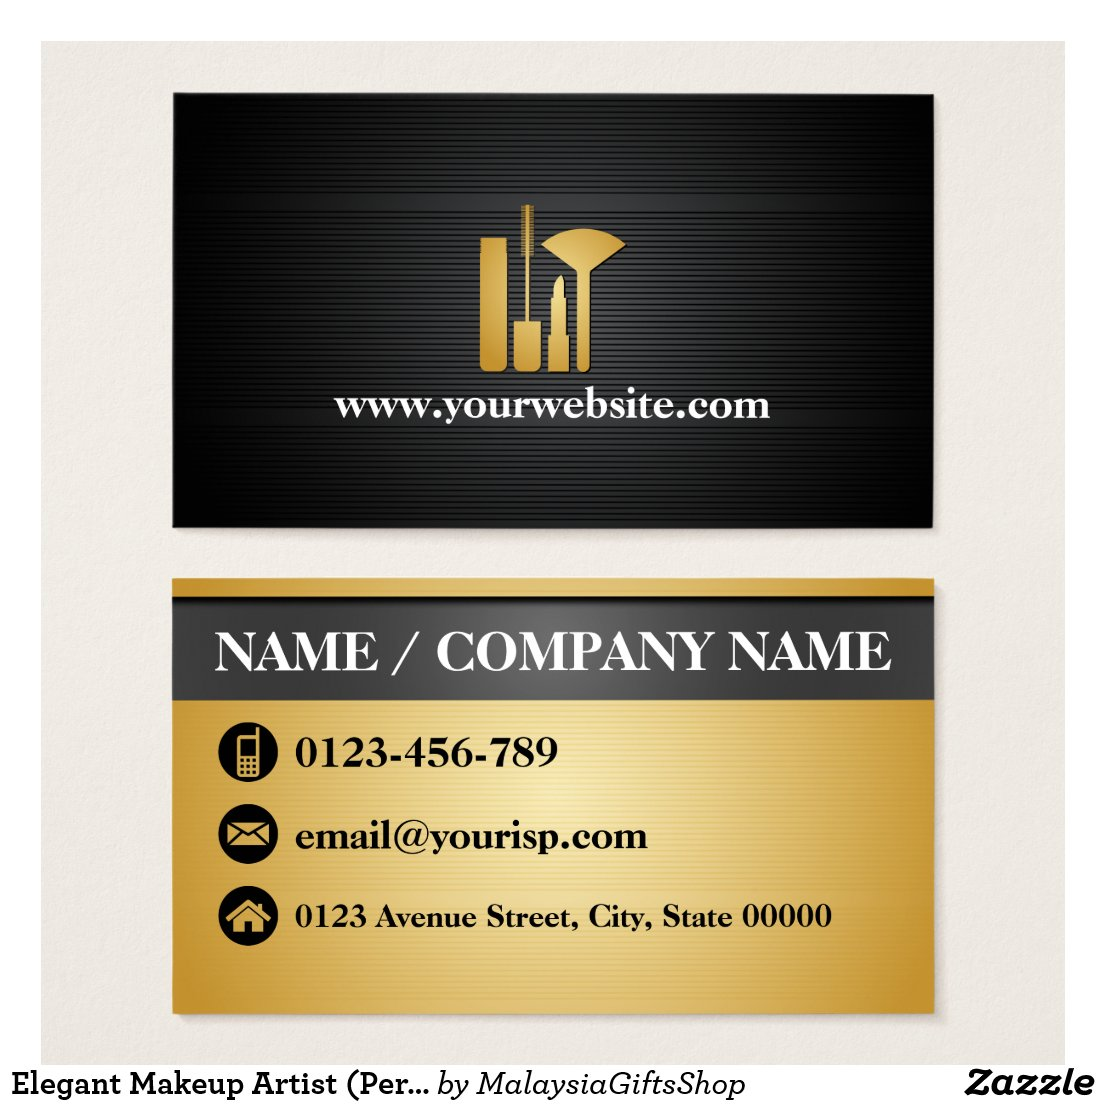 Elegant Makeup Artist (Personalize) Makeup Tool Business Card